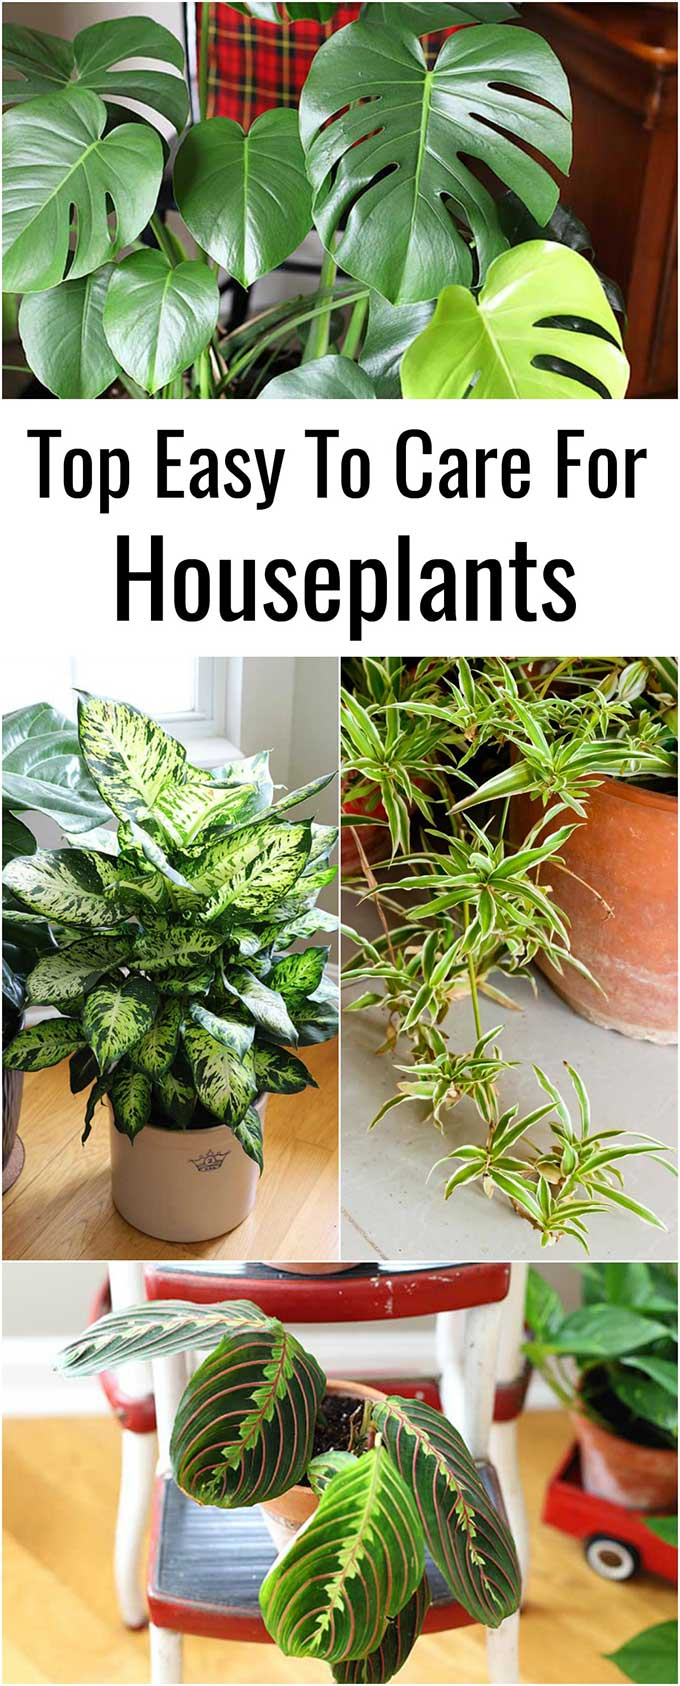 Easy to care for houseplants anyone can grow whether you have a green thumb or not! These plants are perfect for beginner gardeners!